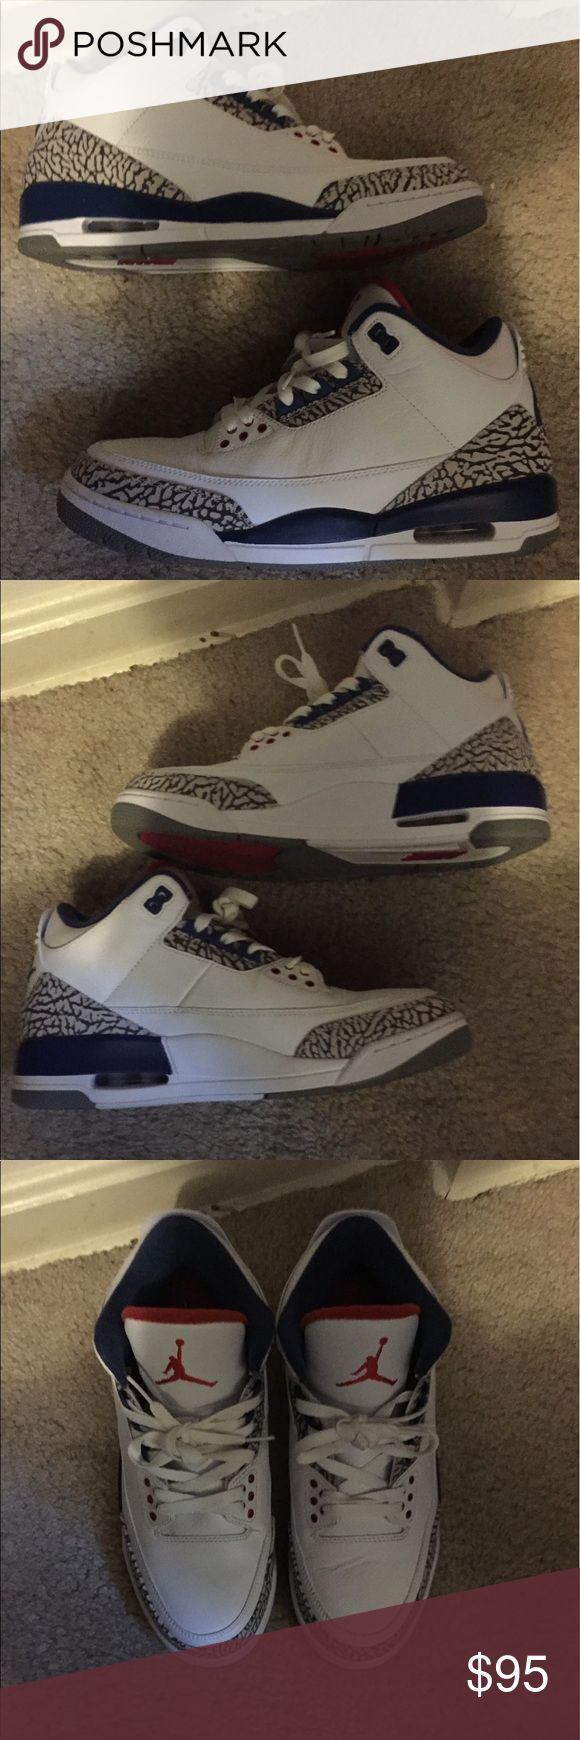 """Jordan 3 """"True Blue"""" Size 10, worn twice. Has no odor or scuffs. Comes with original box, receipt and hang tag. Please text 216-767-3113 of you are wanting to buy this shoe. Thanks -Mike Jordan Shoes Sneakers"""